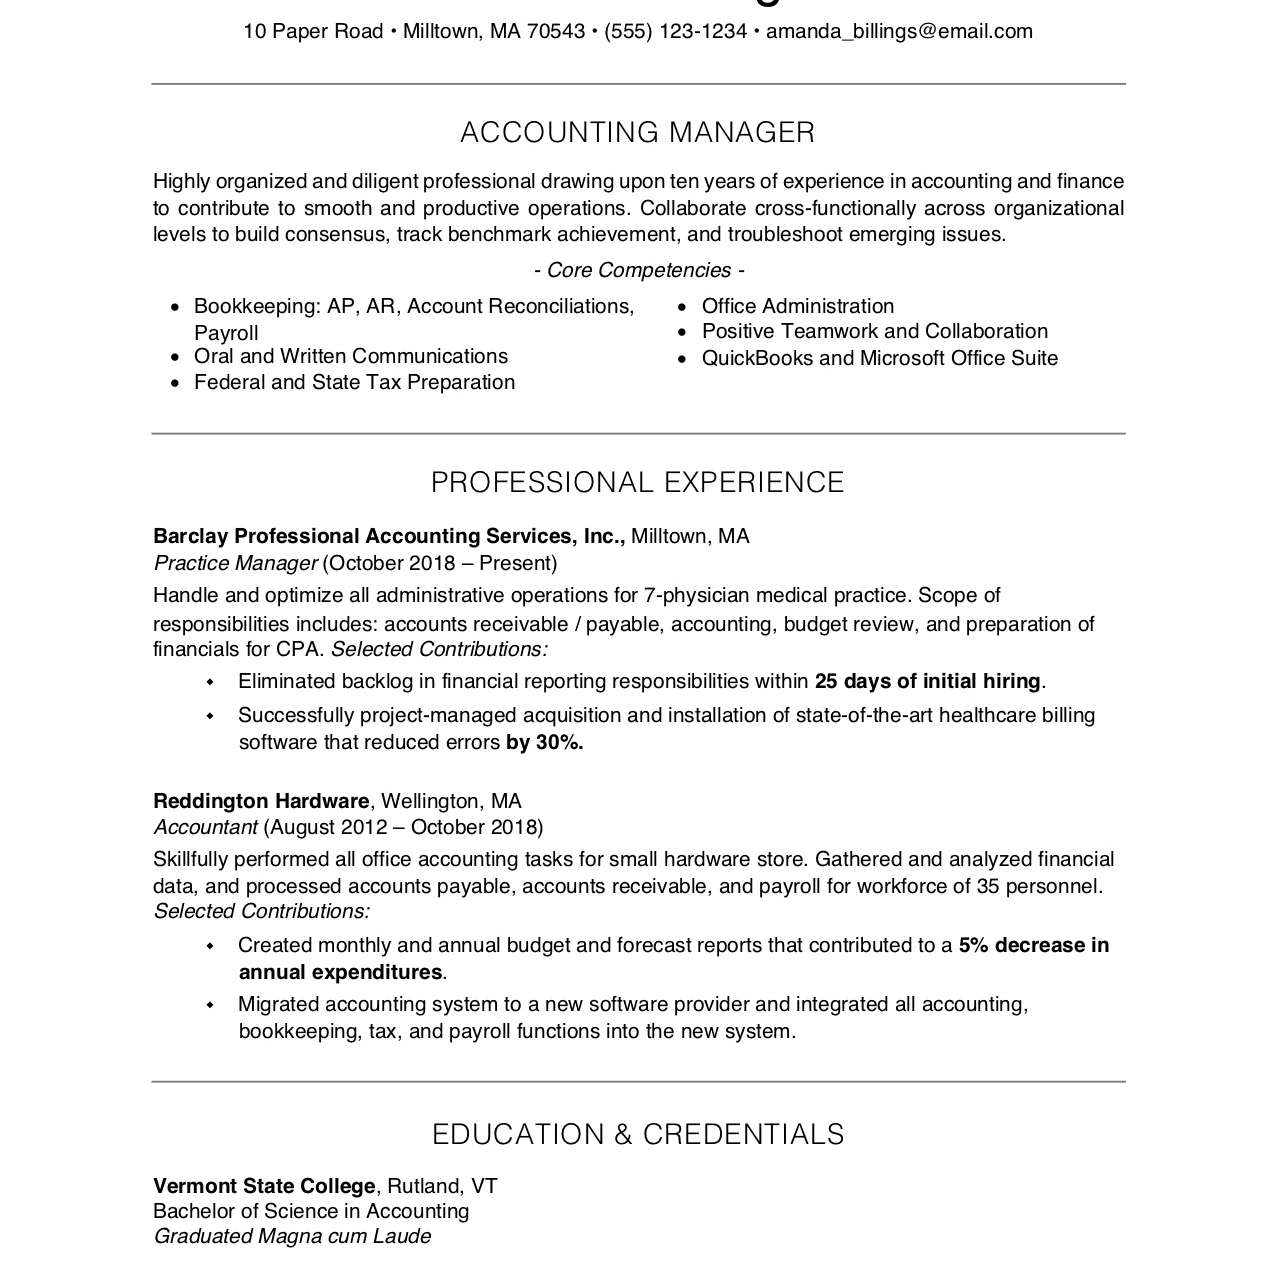 free professional resume examples and writing tips job template 2063596res1 property Resume Job Professional Resume Template